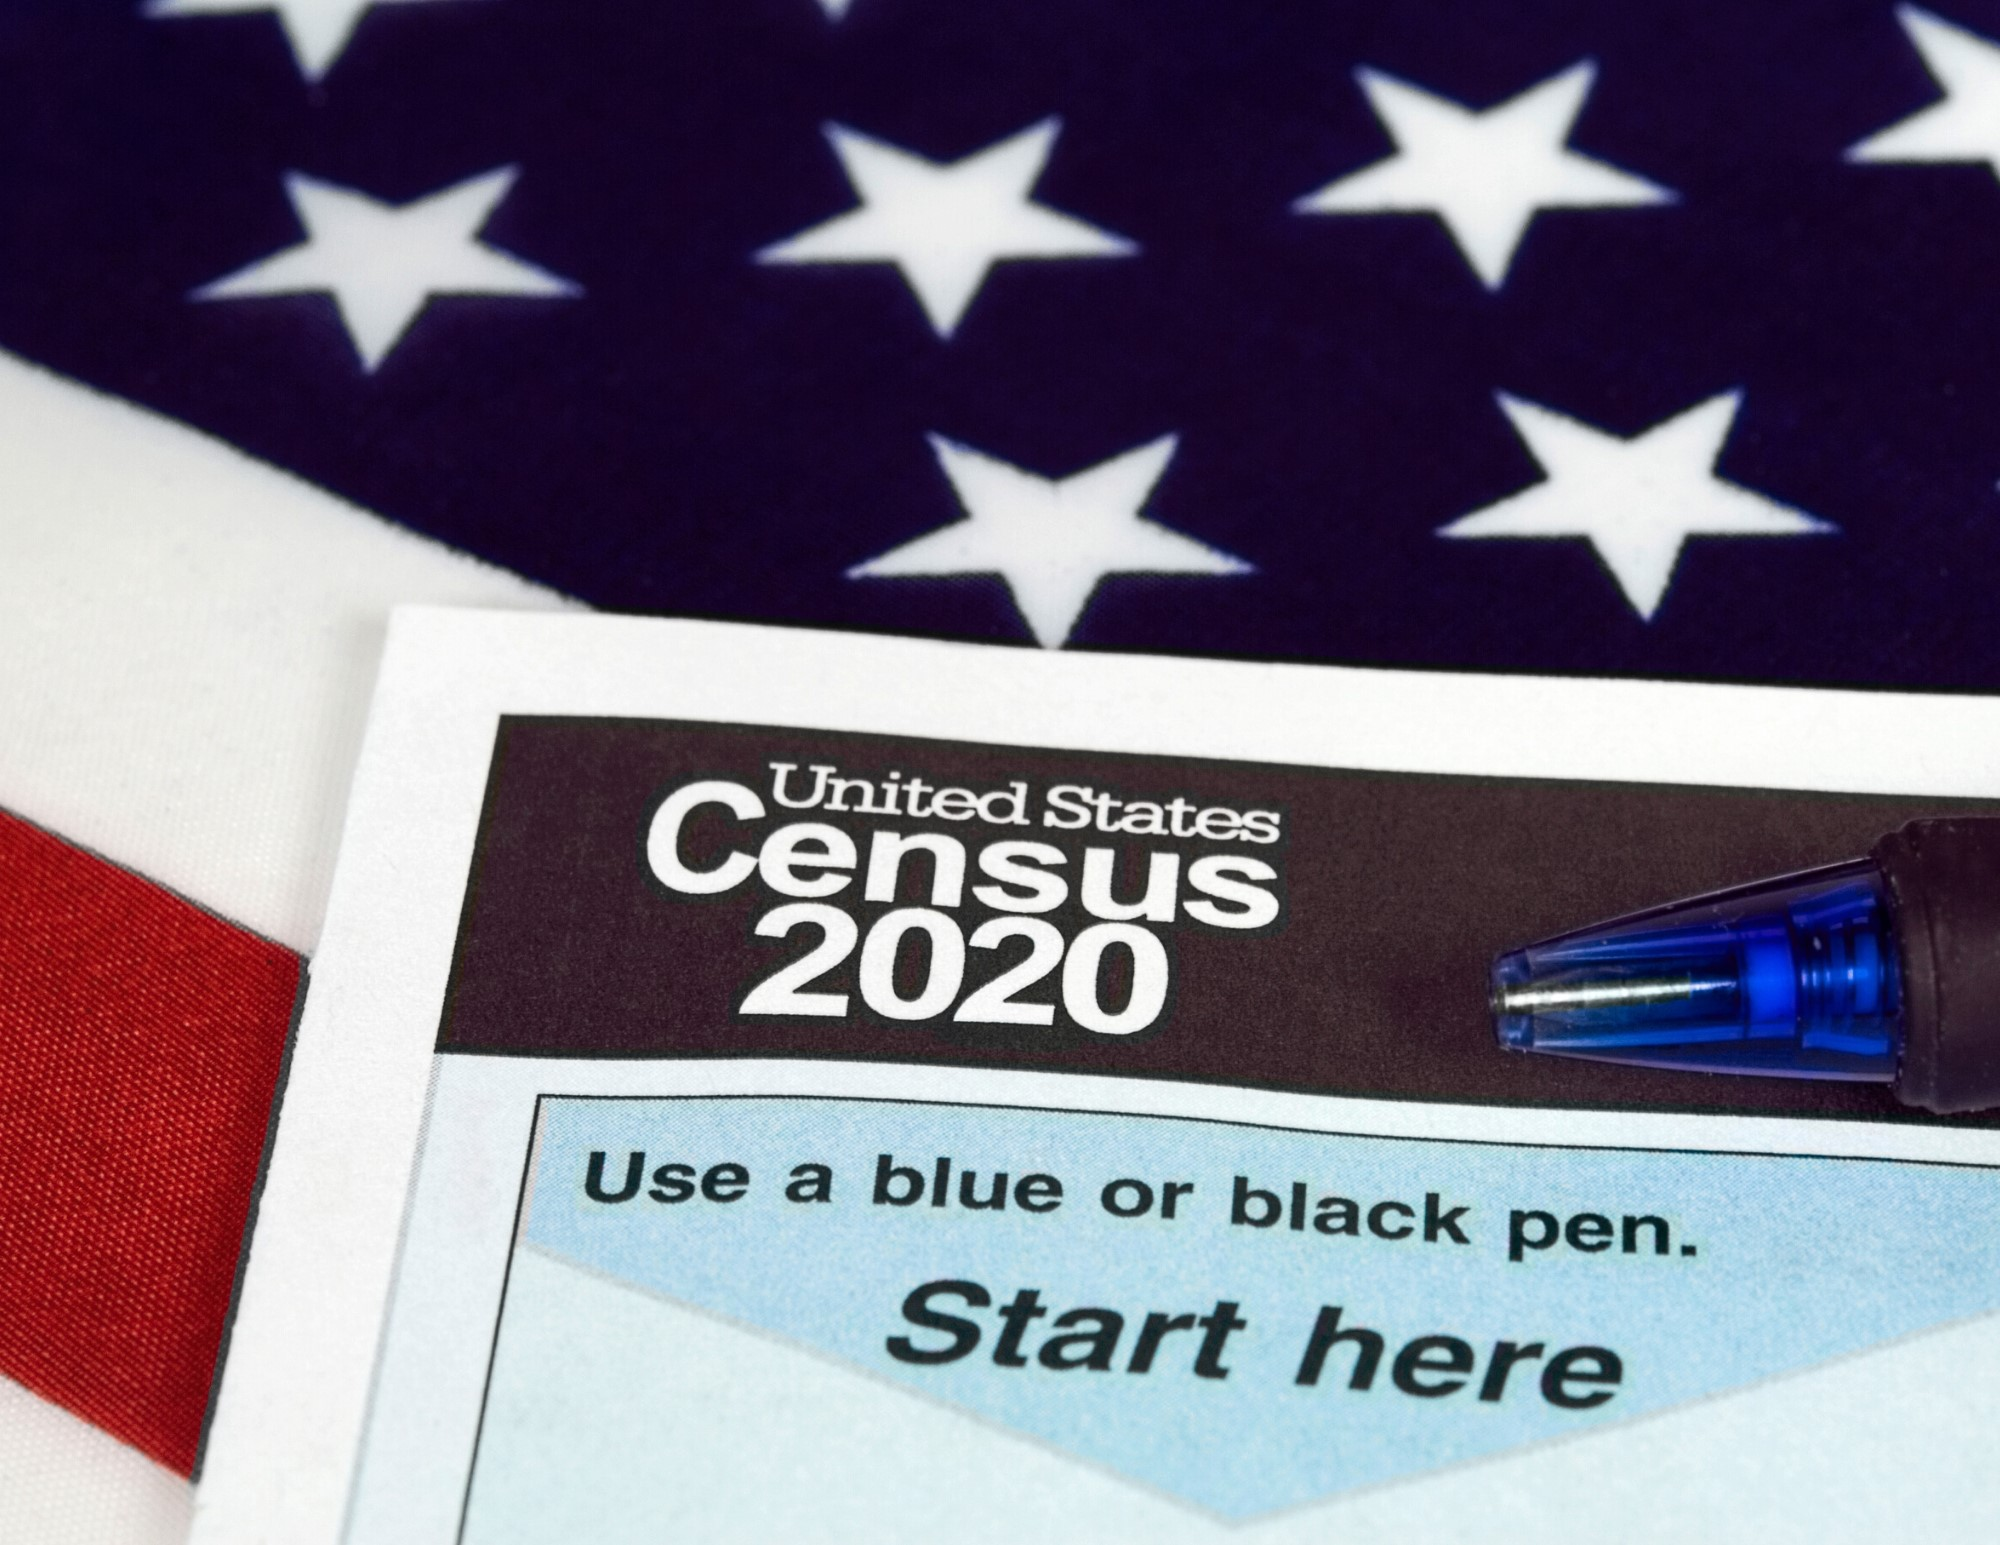 Census 2020: What You Need To Know